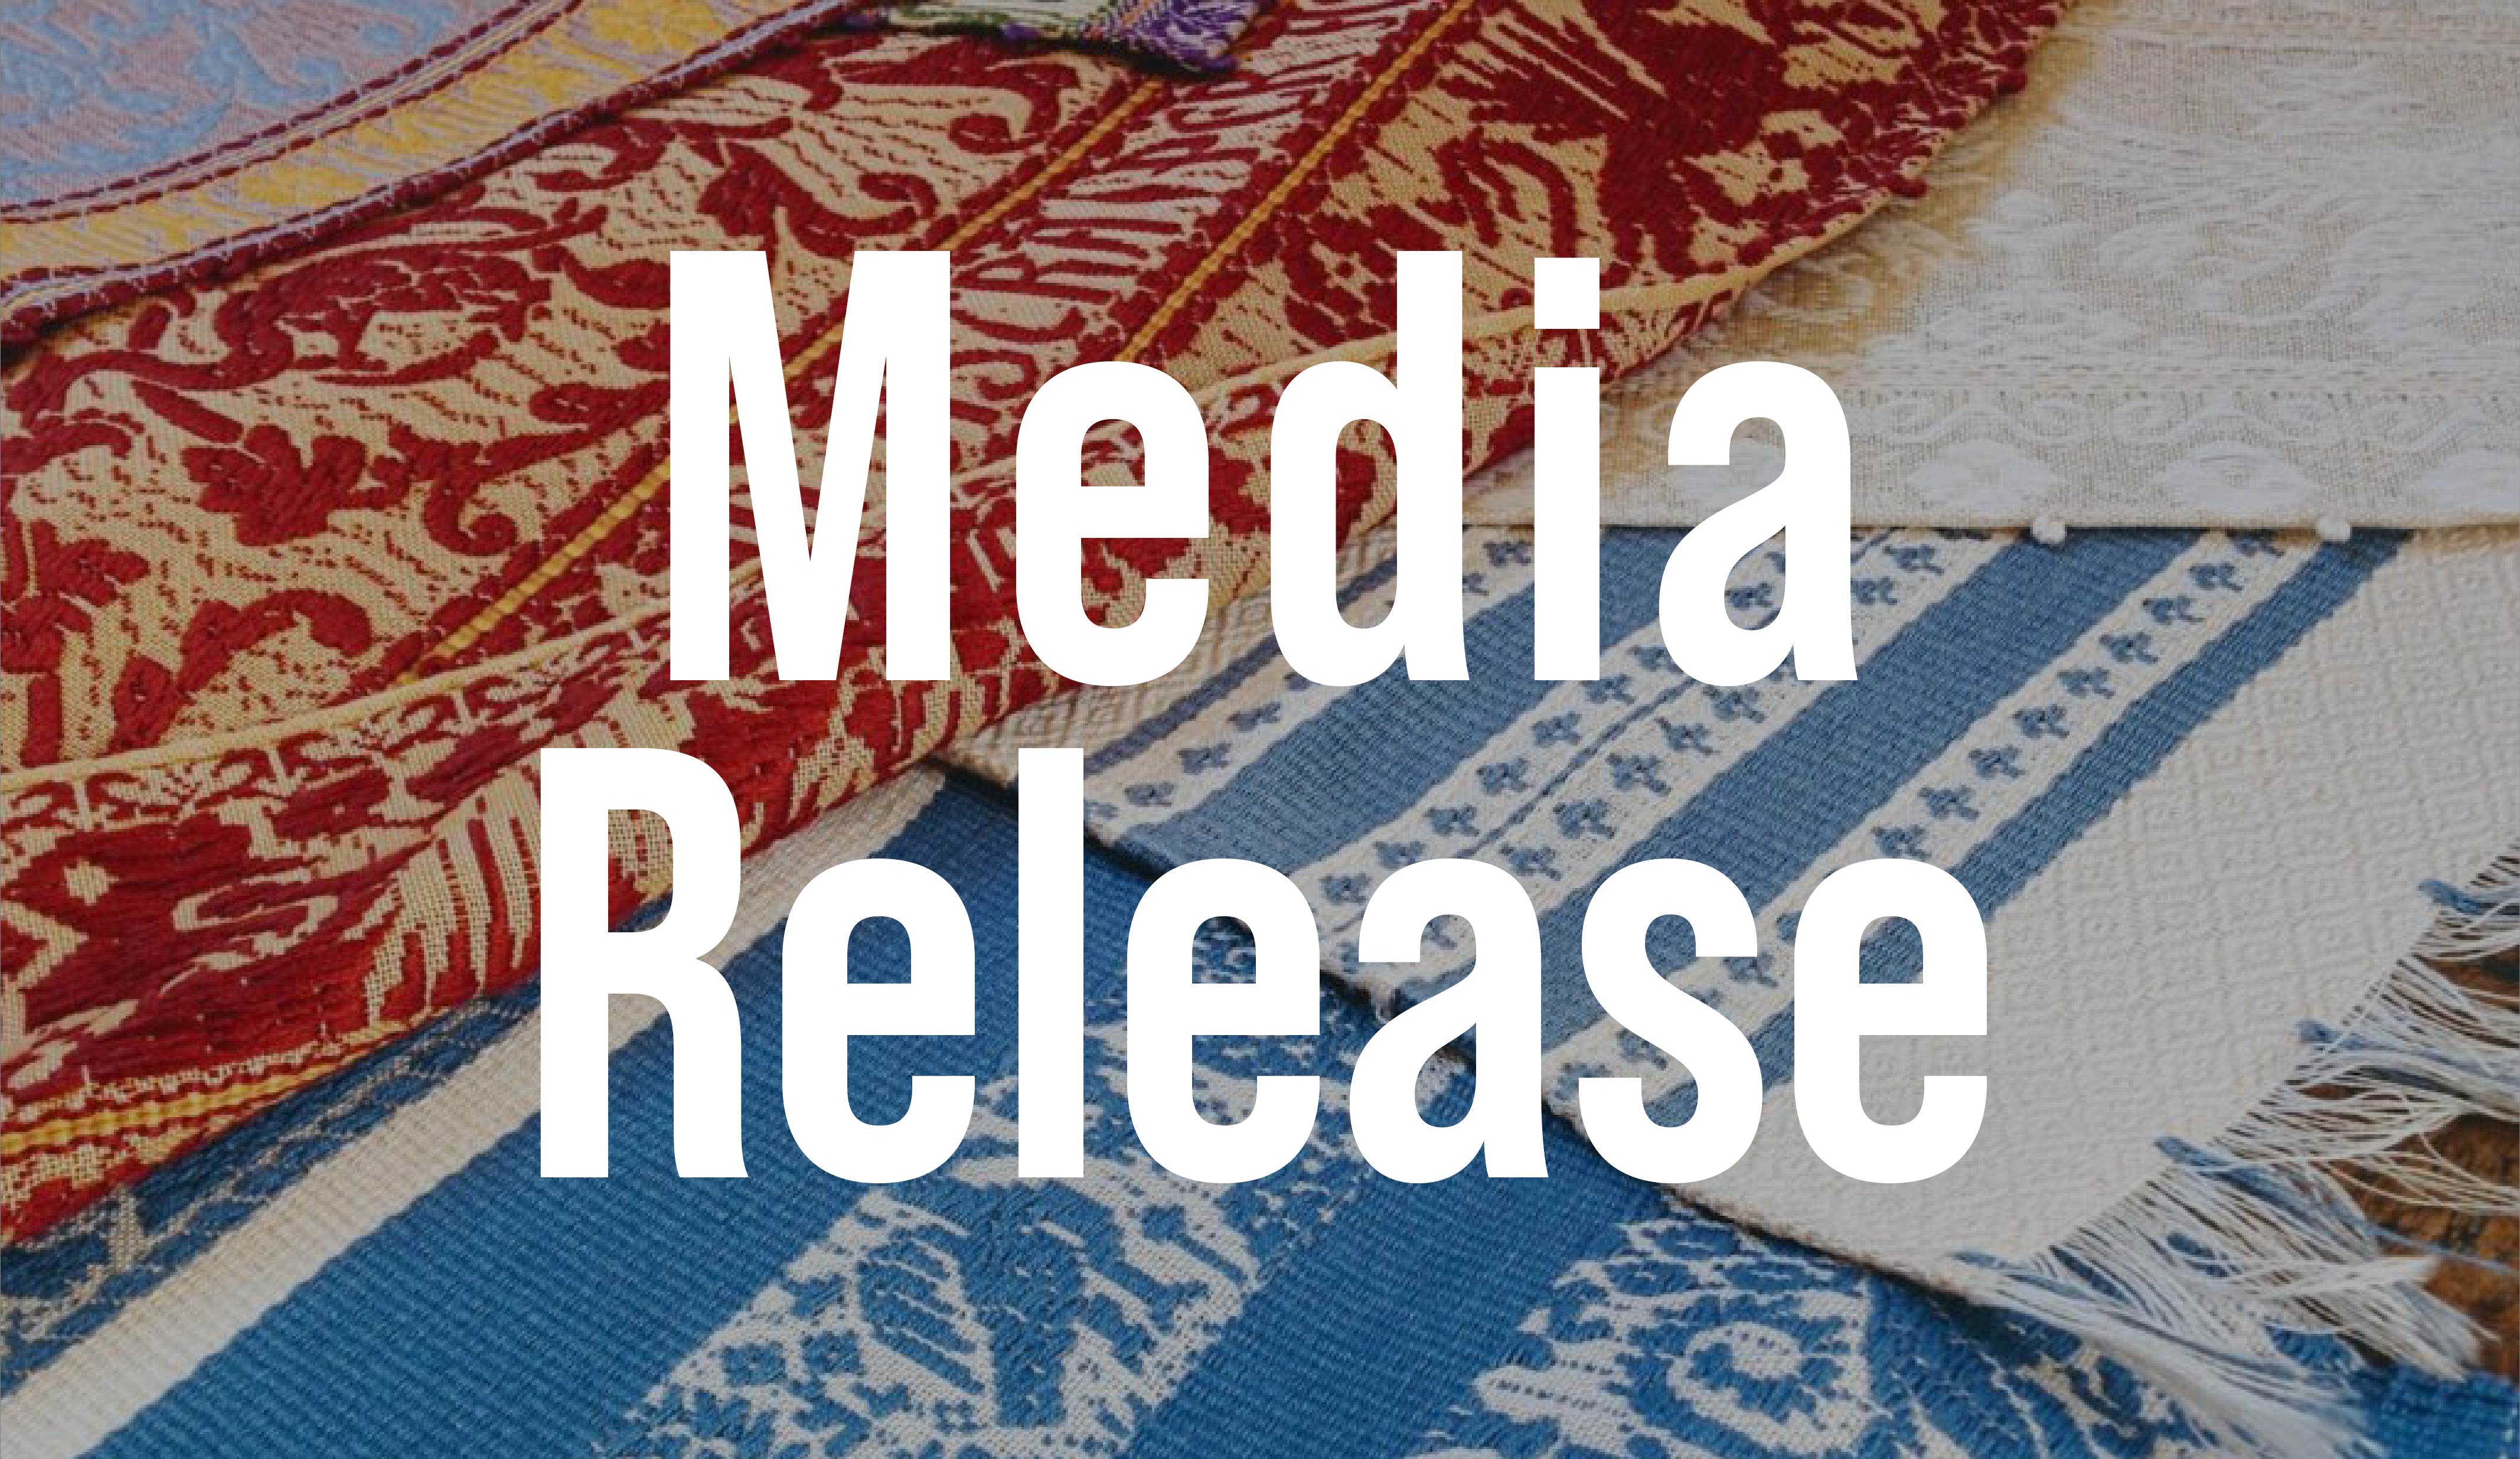 To identify when a news item is an official media release